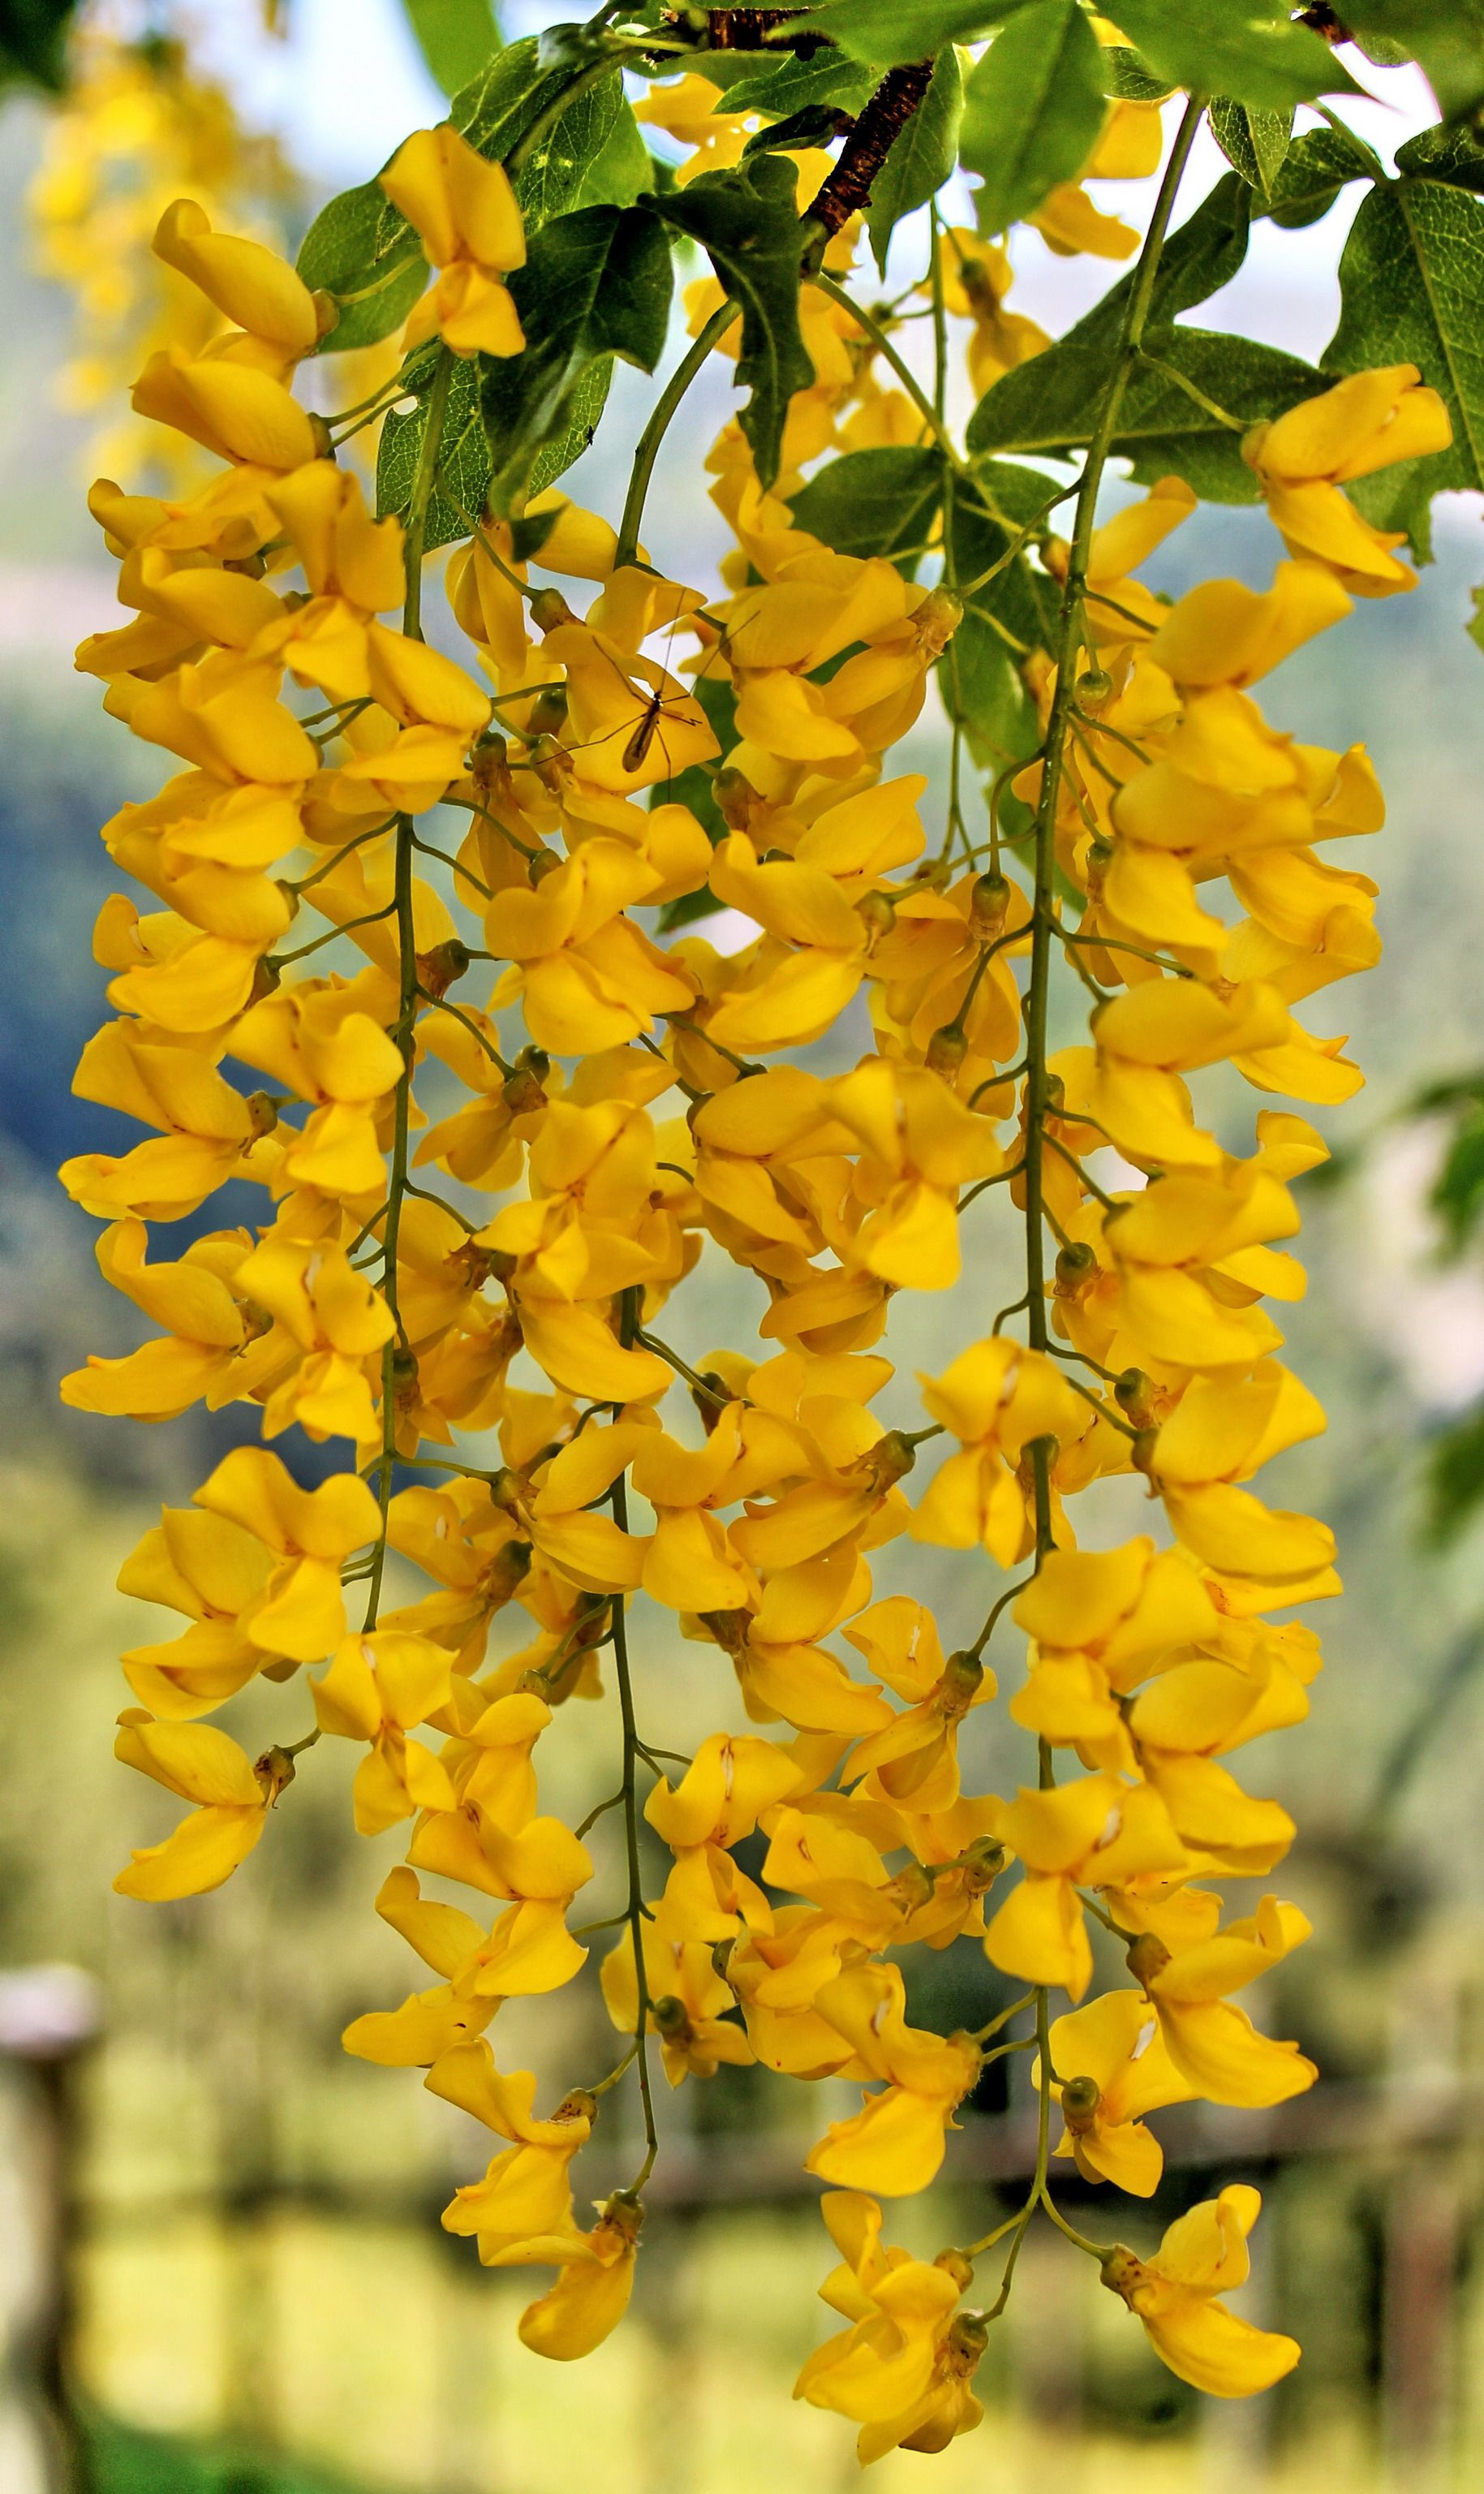 Laburnum A Small European Tree That Has Hanging Clusters Of Yellow